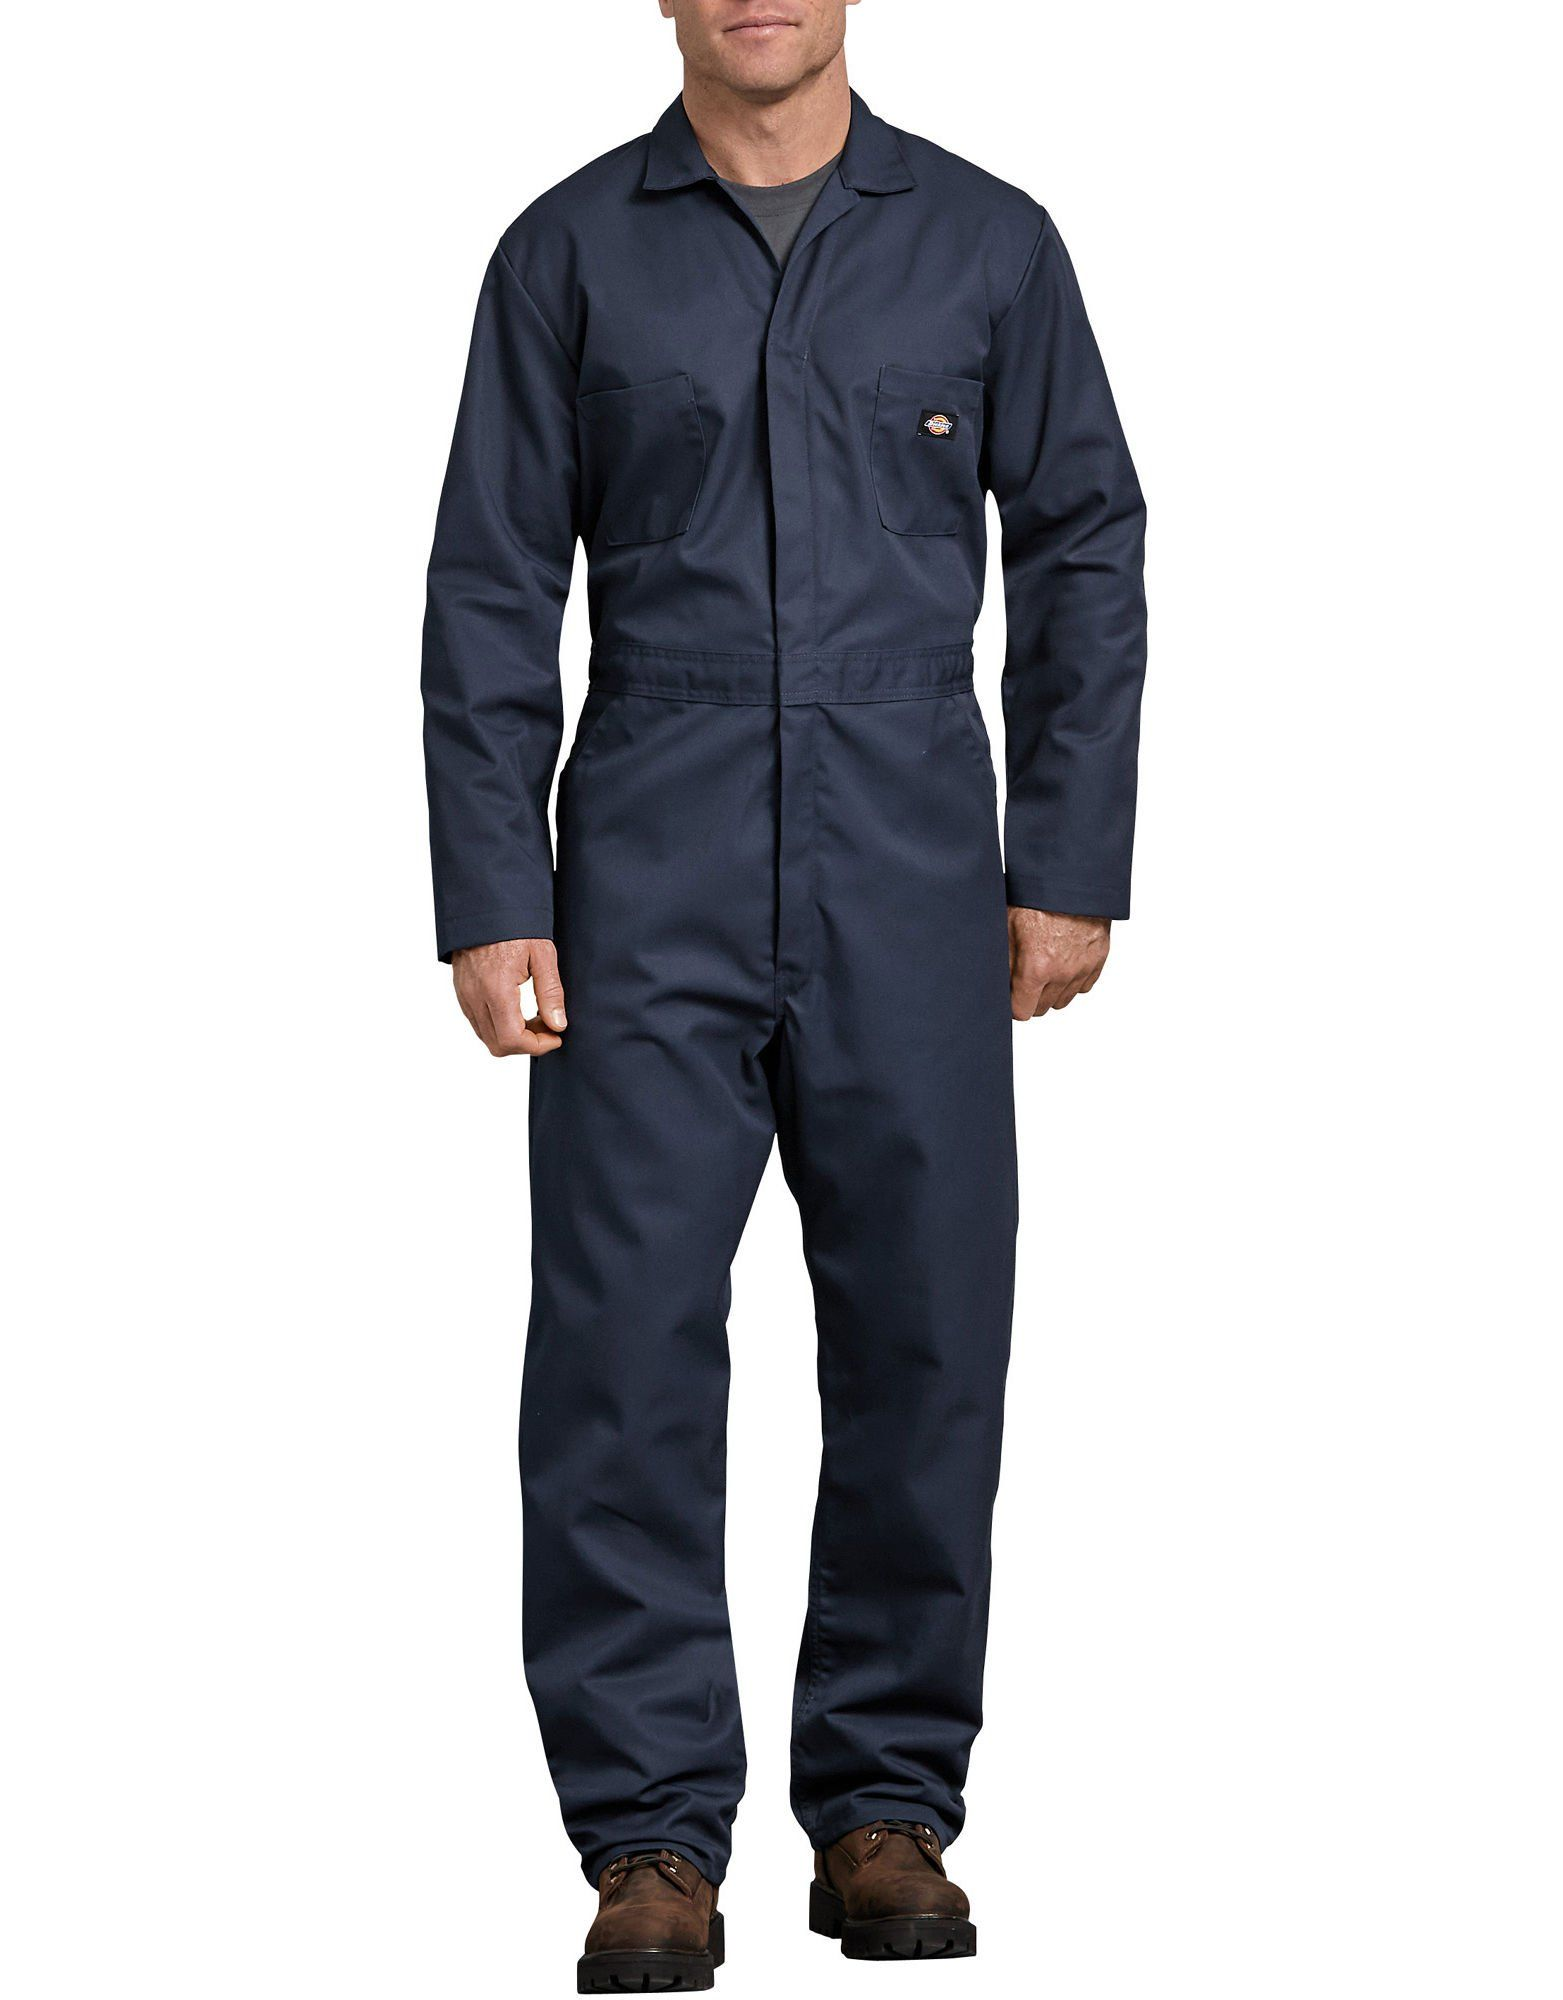 Hombre Mono Army And Workwear